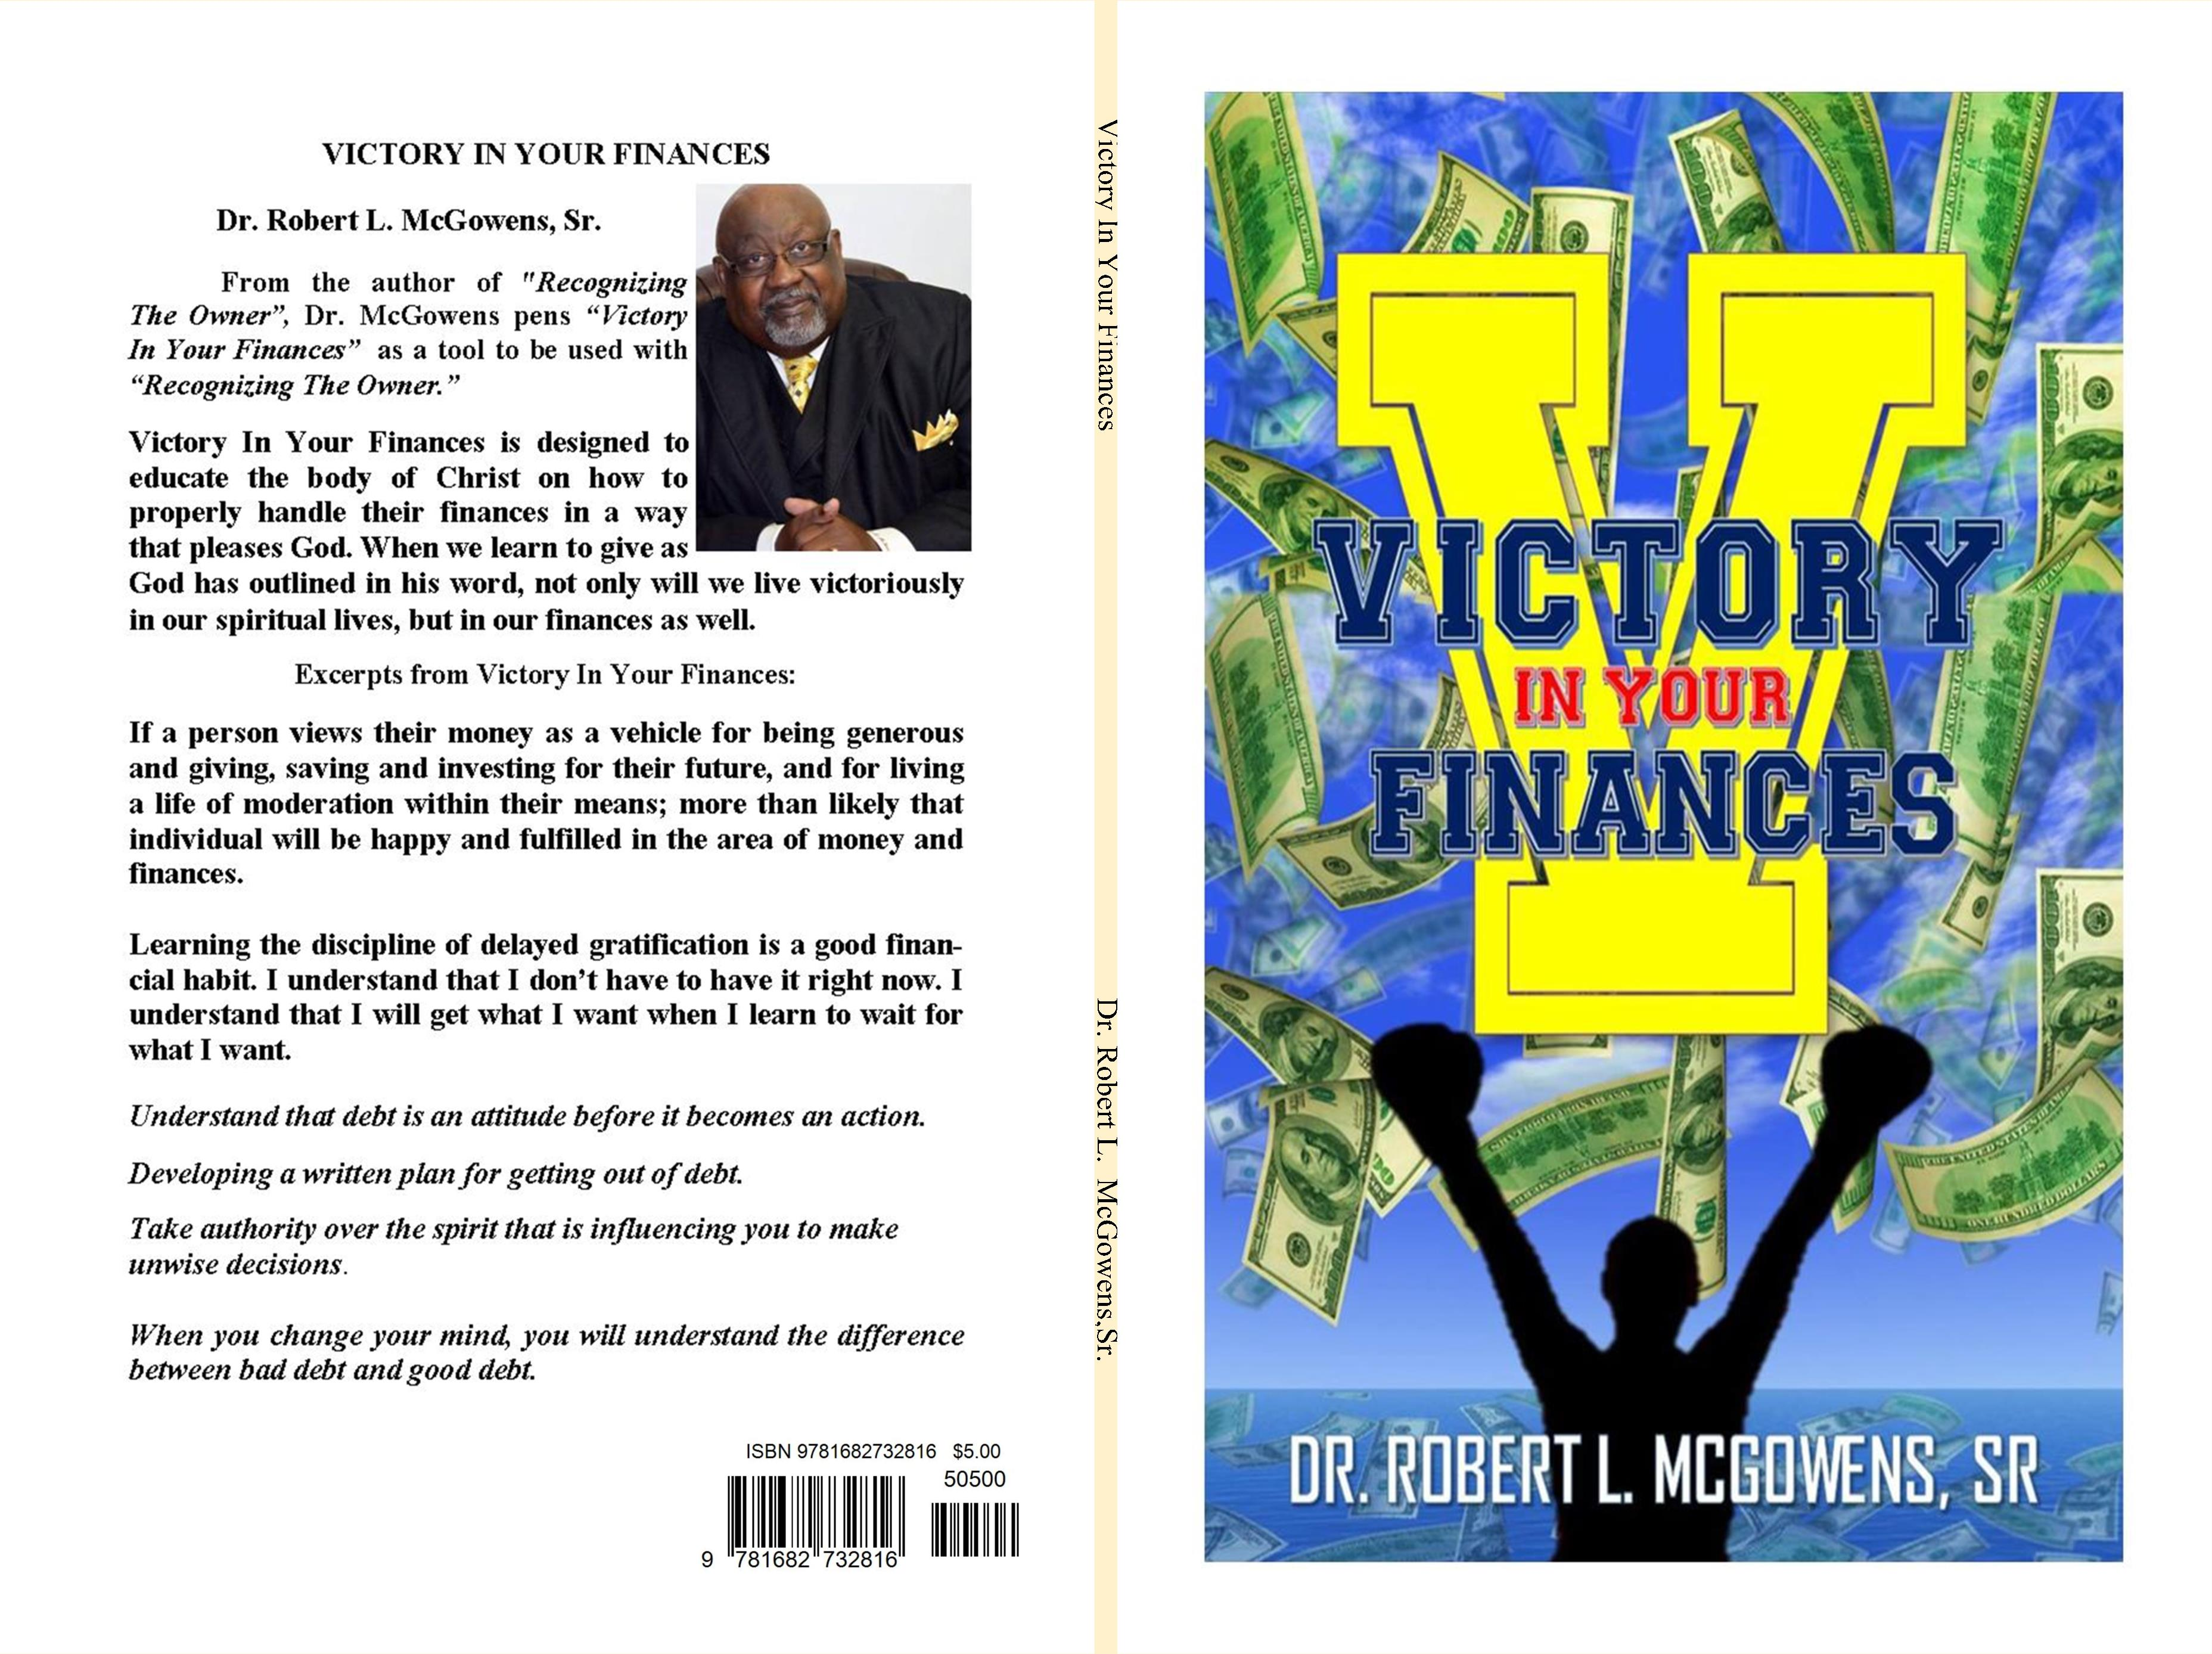 Victory In Your Finances cover image